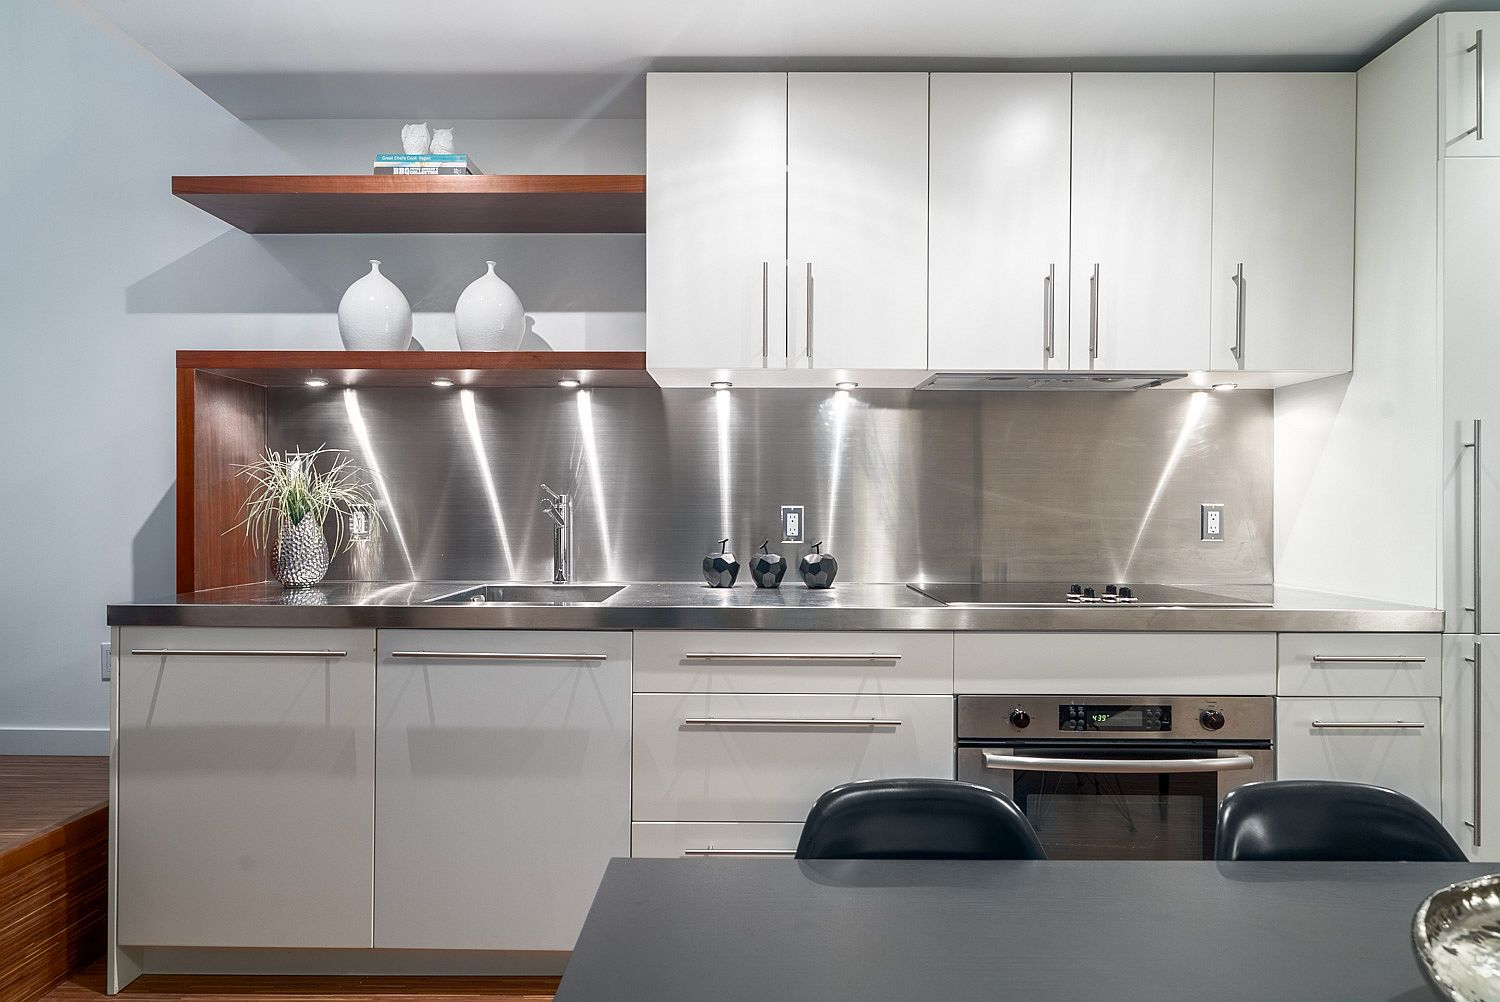 Kitchen with stainless steel backsplash and white cabinets